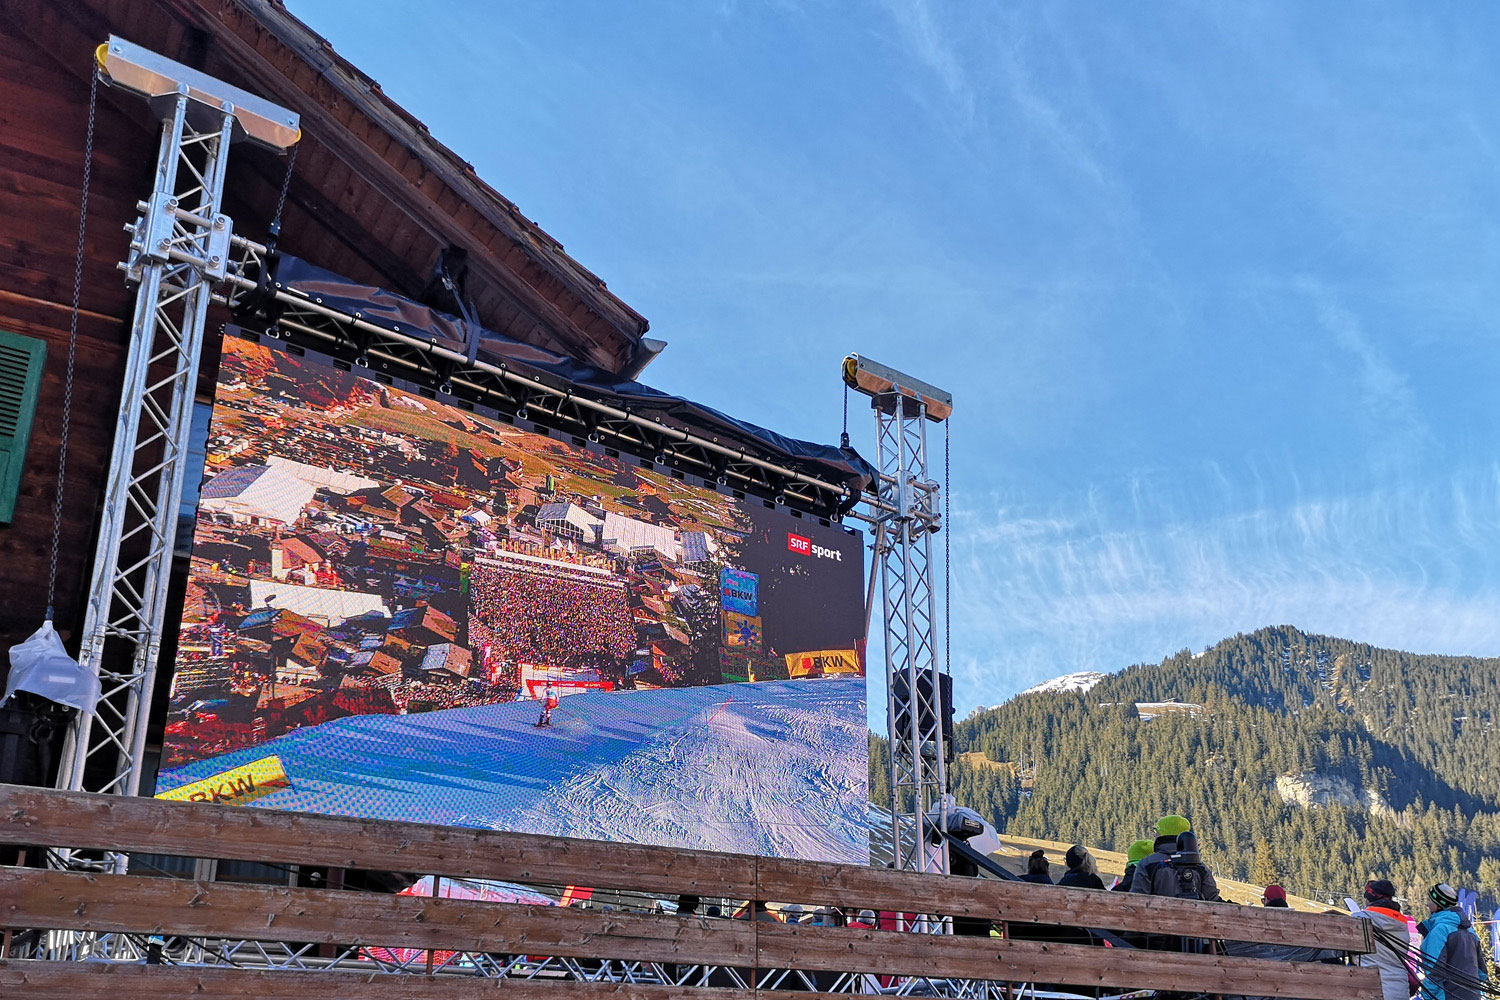 LED-Wand am FIS Snowboard Alpin Worldcup in Scuol